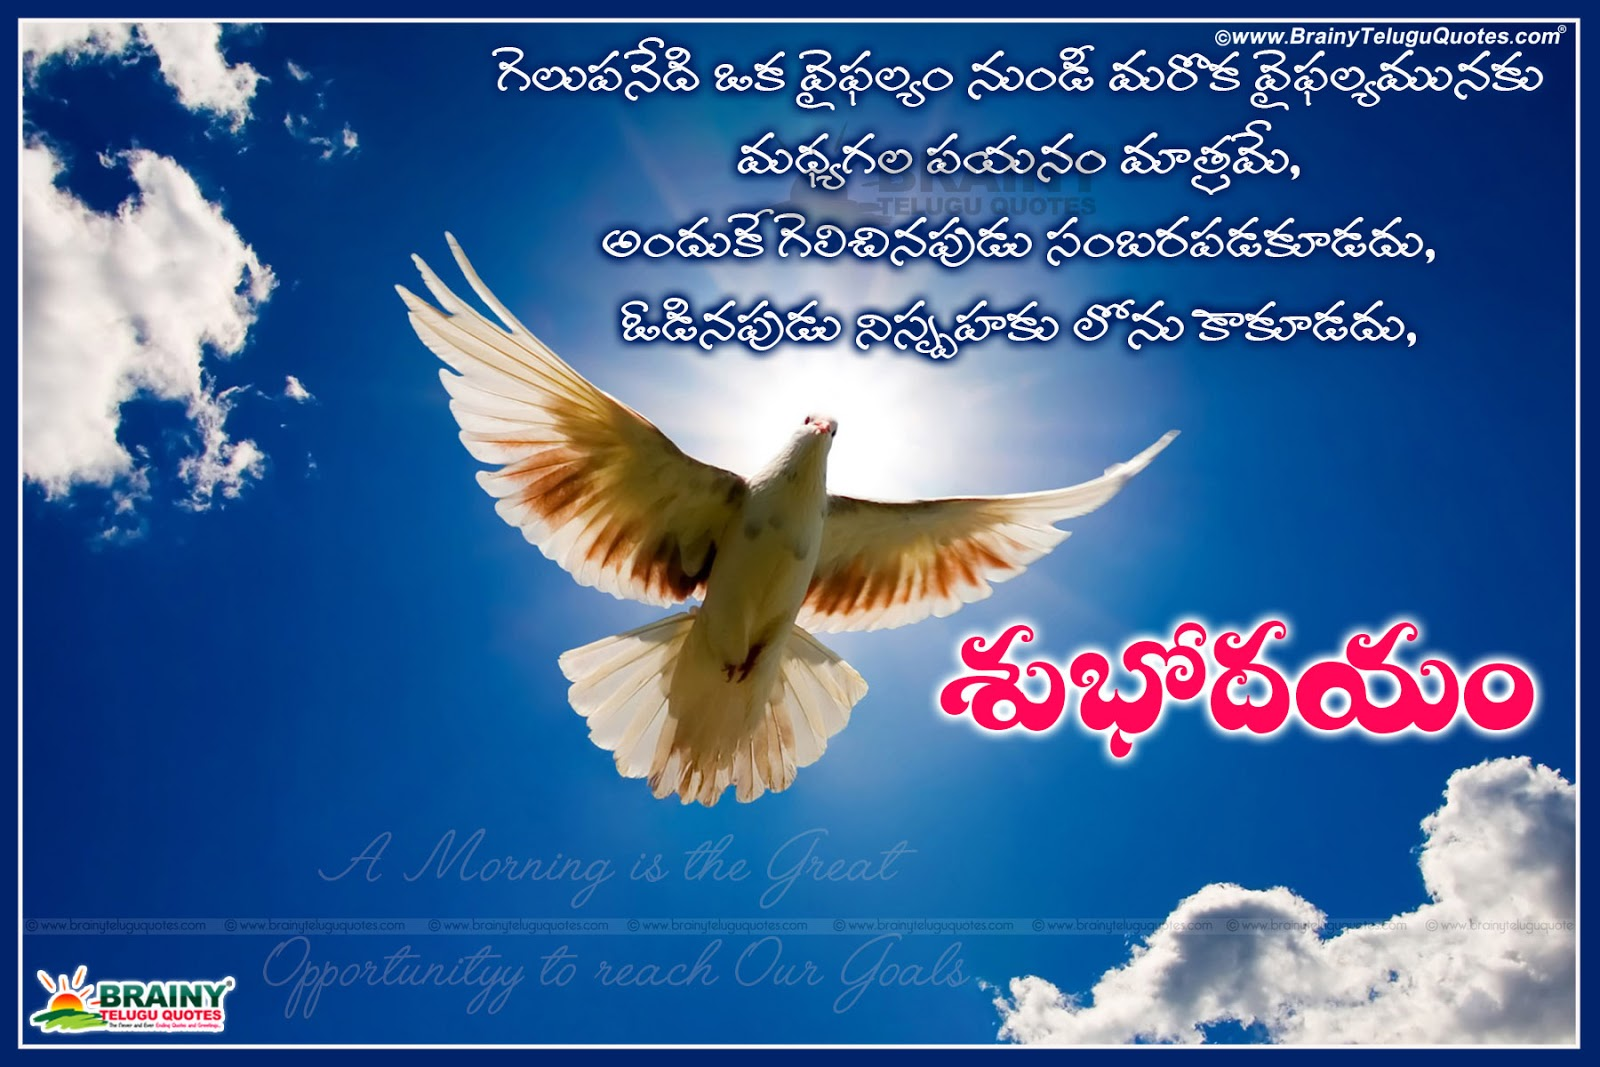 telugu good morning inspirational status messages images